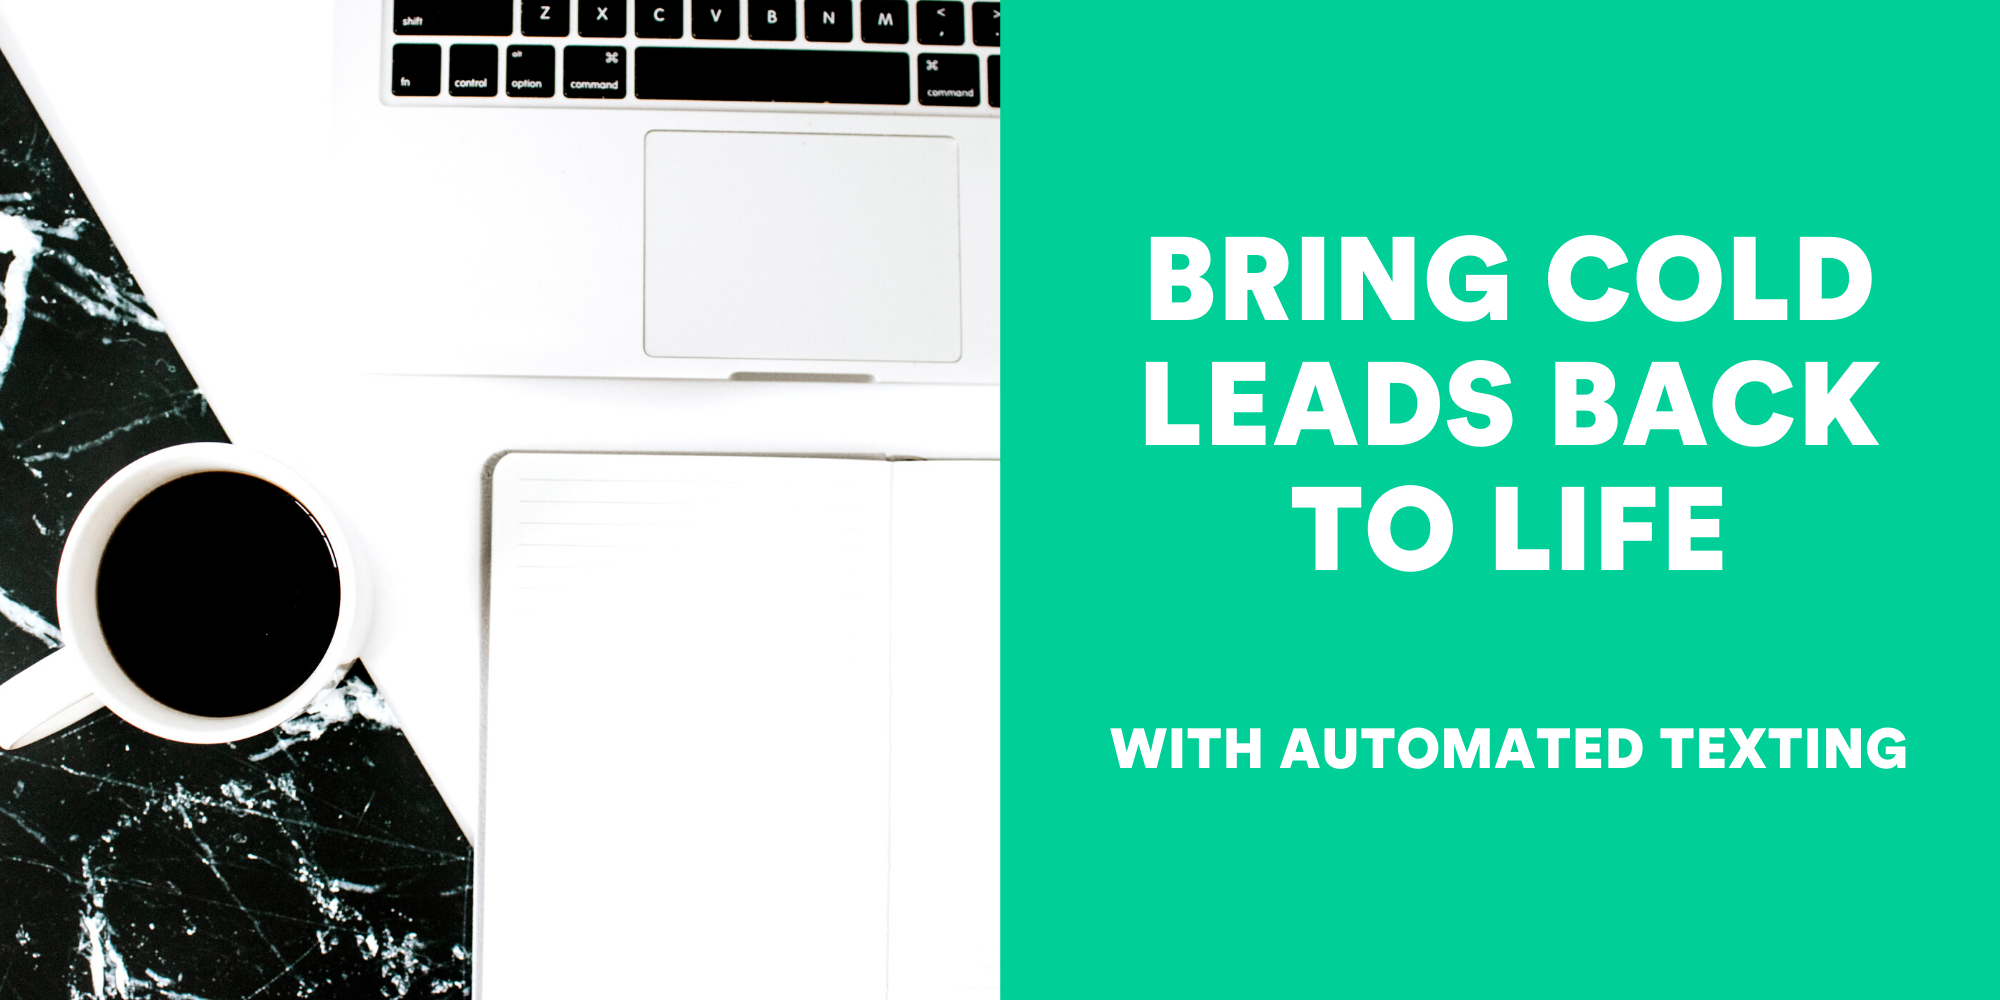 How to Use Automated Texting to Bring Cold Leads Back to Life